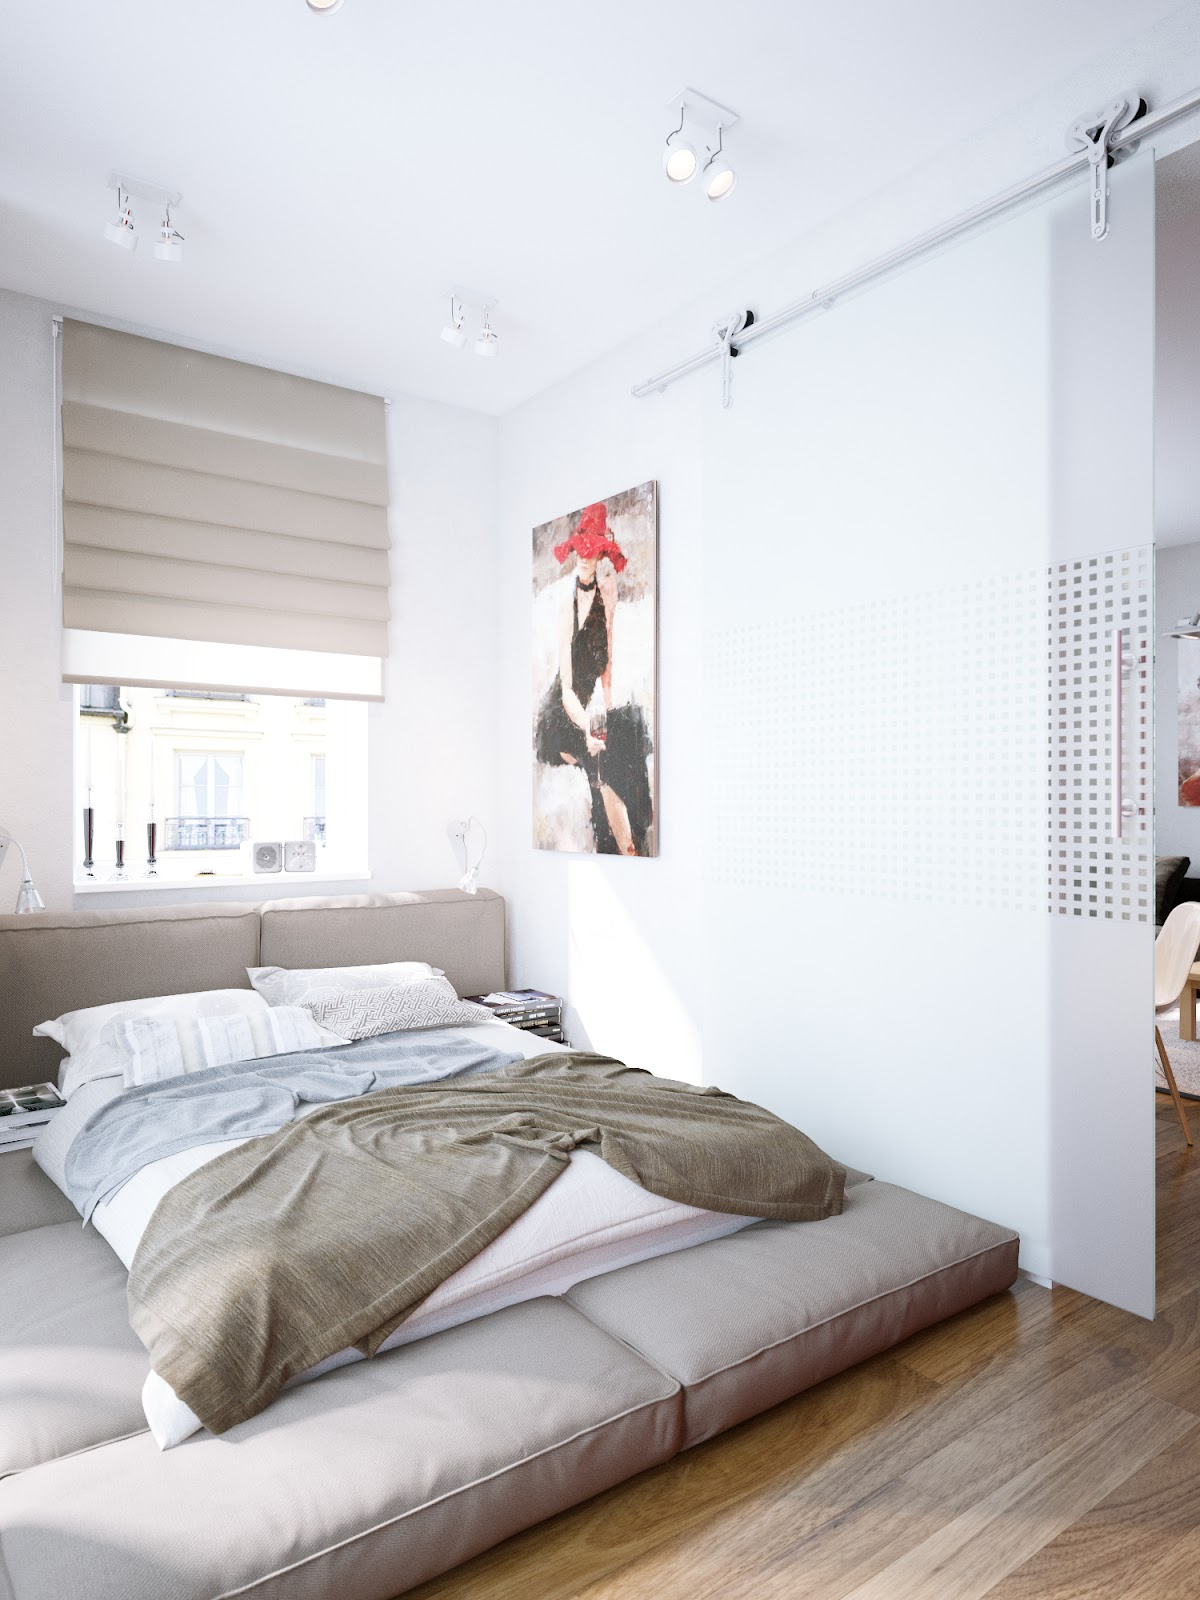 12 Low Height & Floor Bed Designs That Will Make You Sleepy